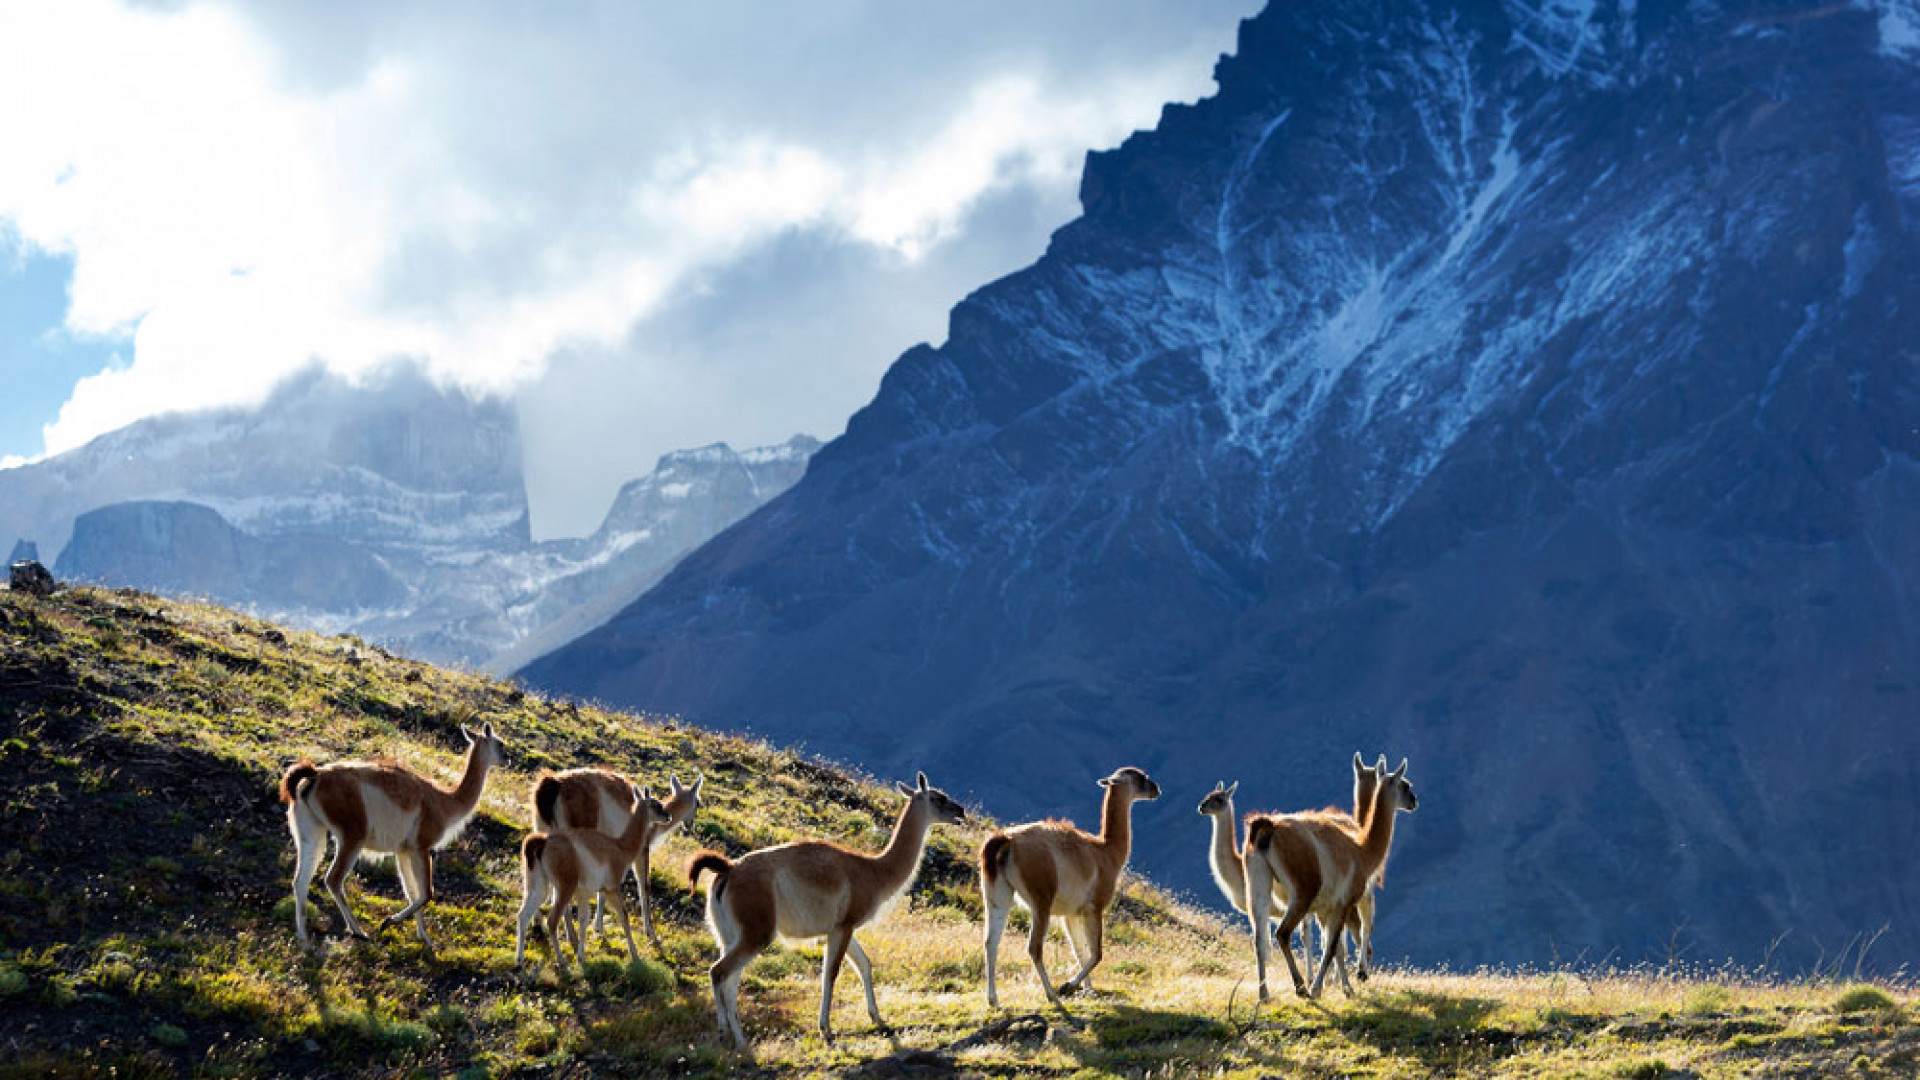 Guanacos in the hill regions of Chilean Patagonia